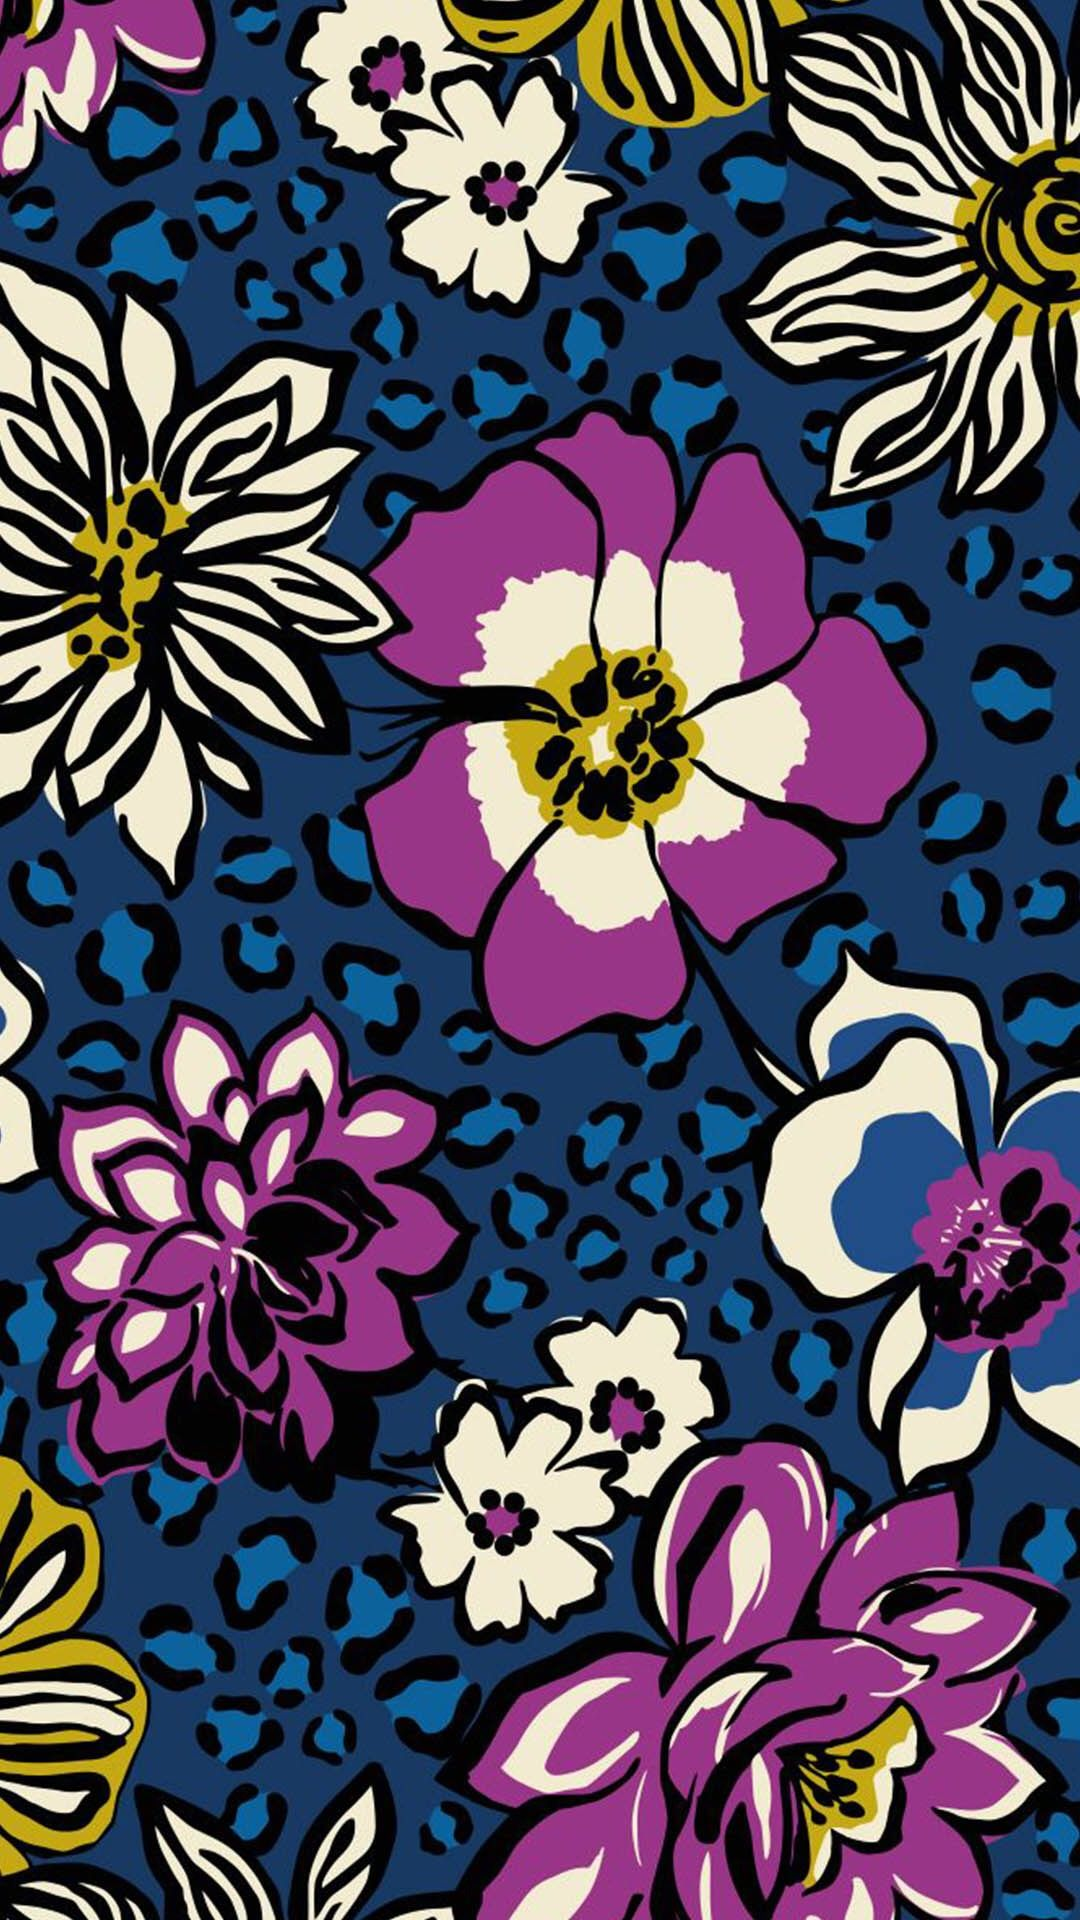 vera bradley iphone wallpaper  Pin by Maddy on iPhone wallpapers | Pinterest | Wallpaper, Prints ...